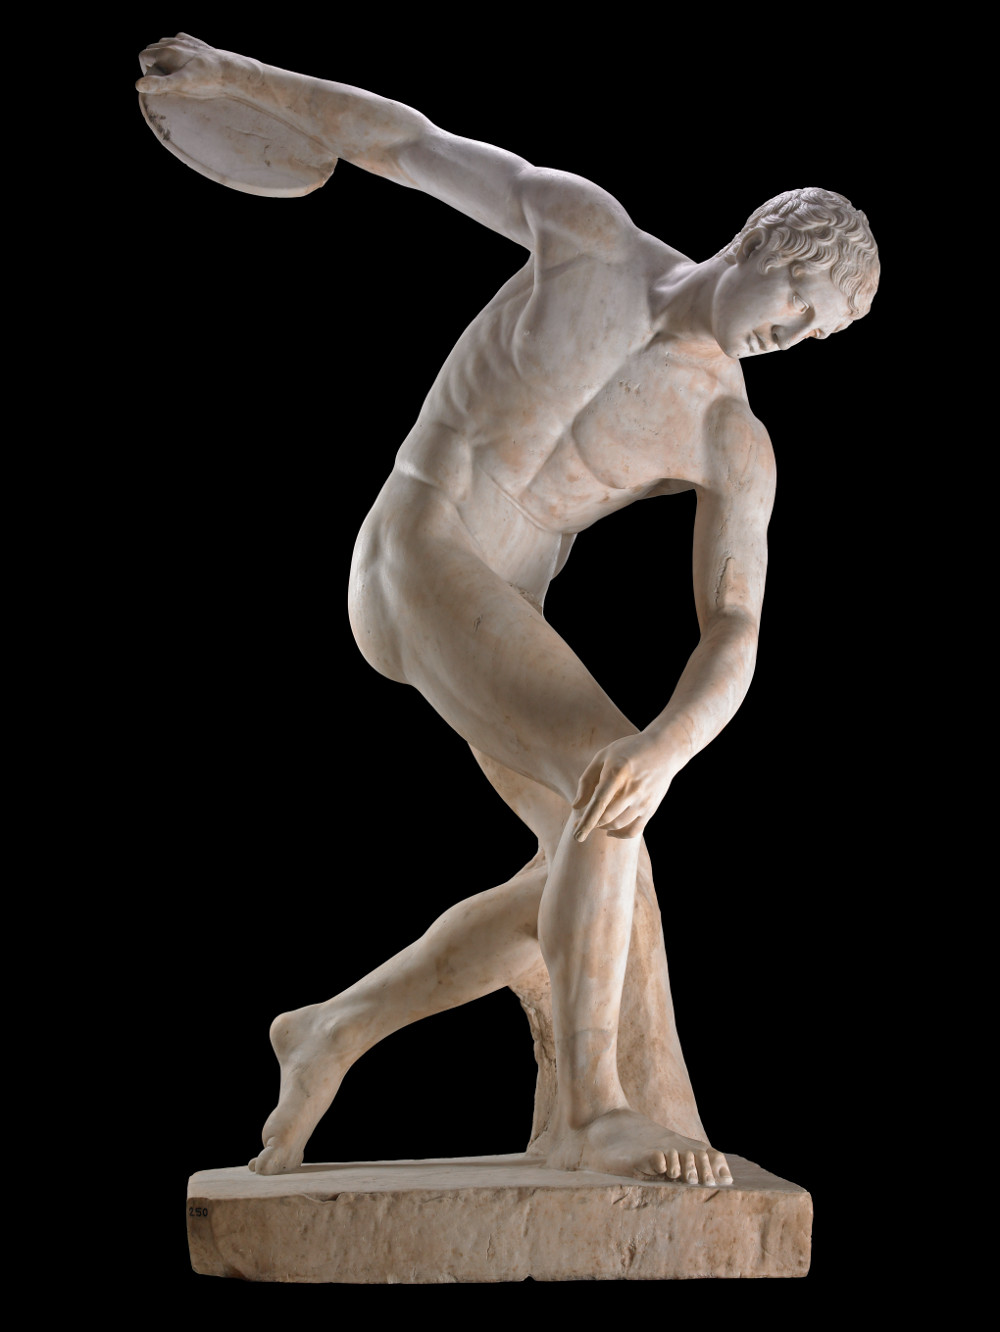 The Townley Discobolus - Marble100–200 ADRoman copy after Greek statueBritish MuseumThis Roman copy of the ancient Greek sculpture of Discobolus, or discus-thrower, is one of the most famous sculptures from the ancient world and the British Museum. It shows an idealised athlete – naked, refined and eternally youthful – seemingly captured in the moment before releasing the discus. Discobolus embodies the idea of balancing opposing forces. In the rhythm and harmony of his proportions, the ancient Greeks saw an underlying order behind the chaos of the world.